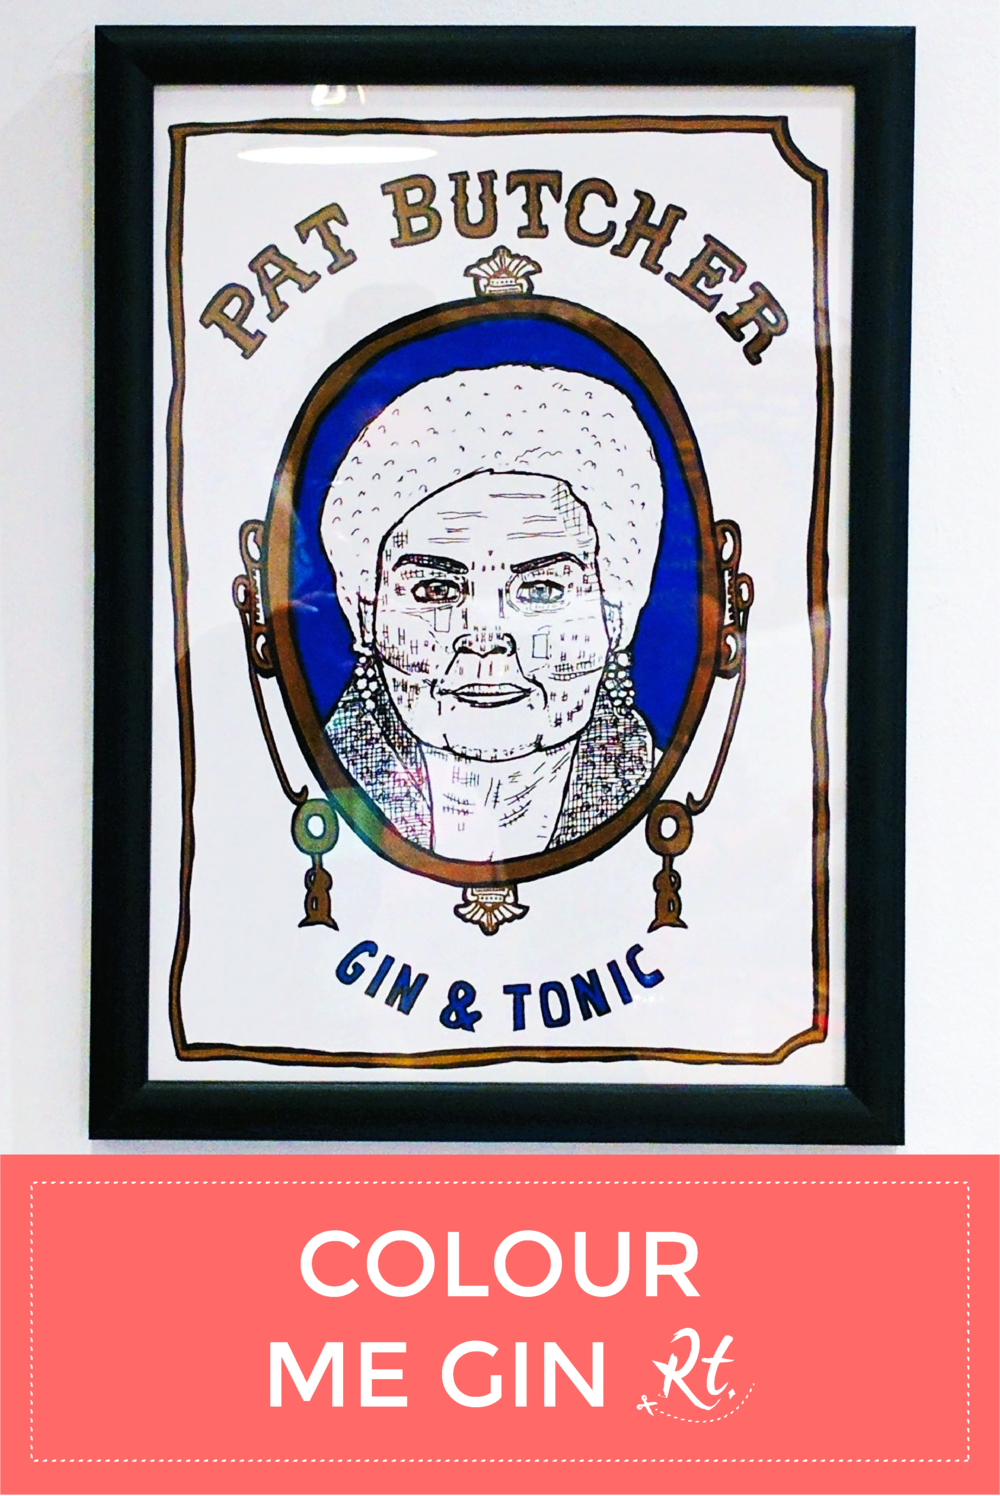 Colour Me Gin by Rosh Thanki, Dave Salisbury, Massive Arms's Pat Butcher illustration at Leyas Coffee